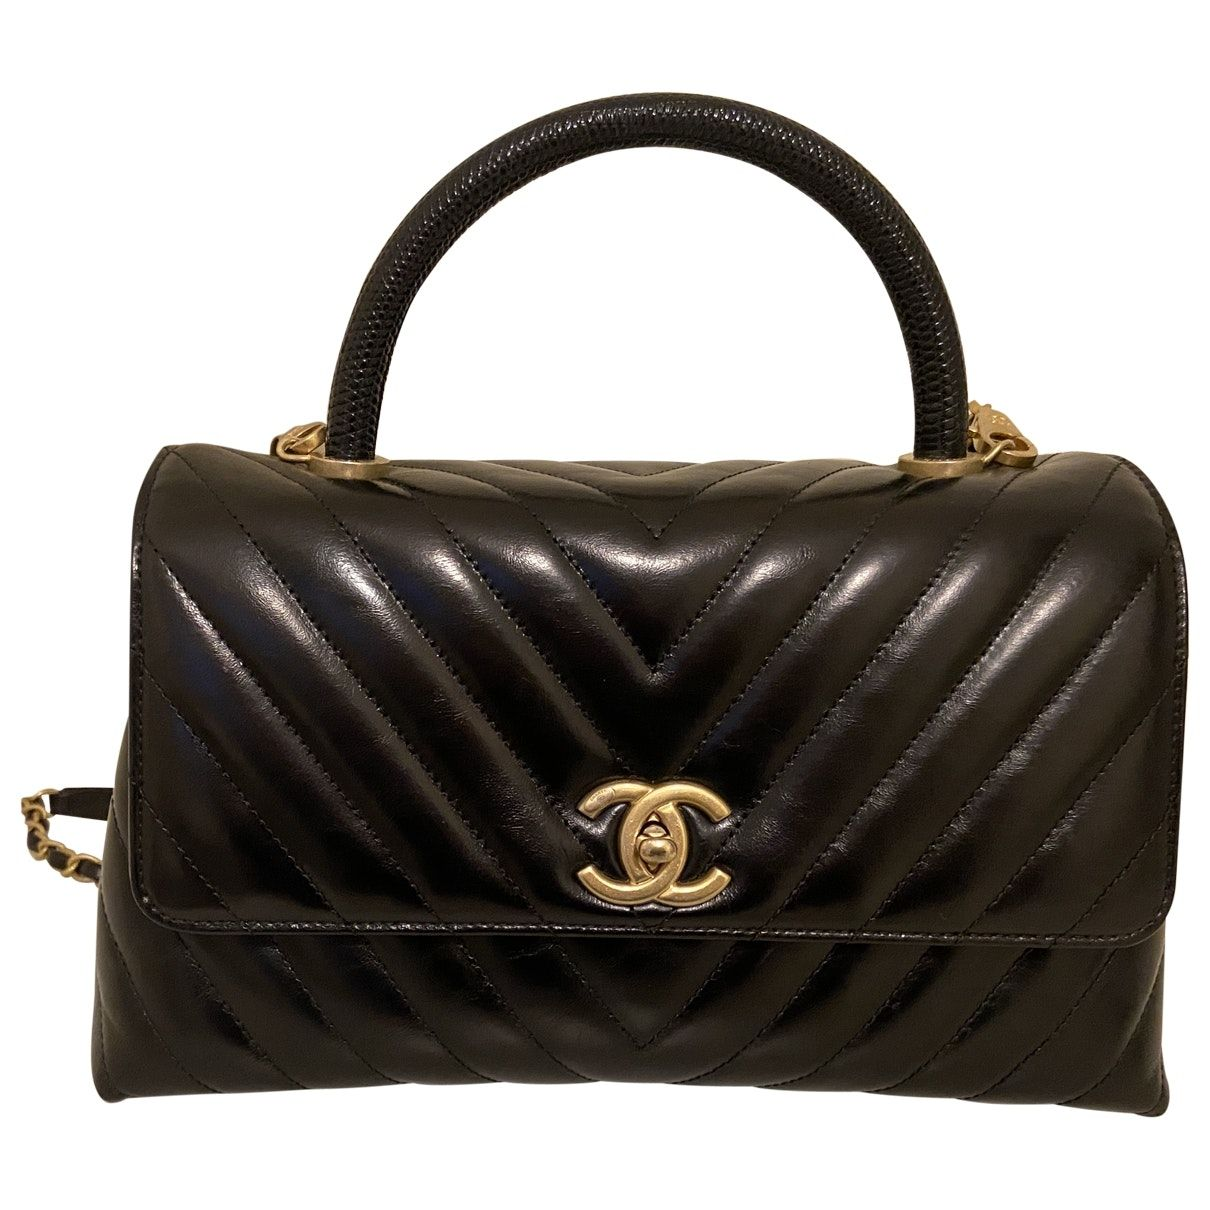 Stunning Chanel Coco Handle In Shiny Calfskin Leather With Black Lizard Handle Medium Size Aged Gold Hardwar In 2020 Leather Handbags Woman Bags Handbags Coco Handle